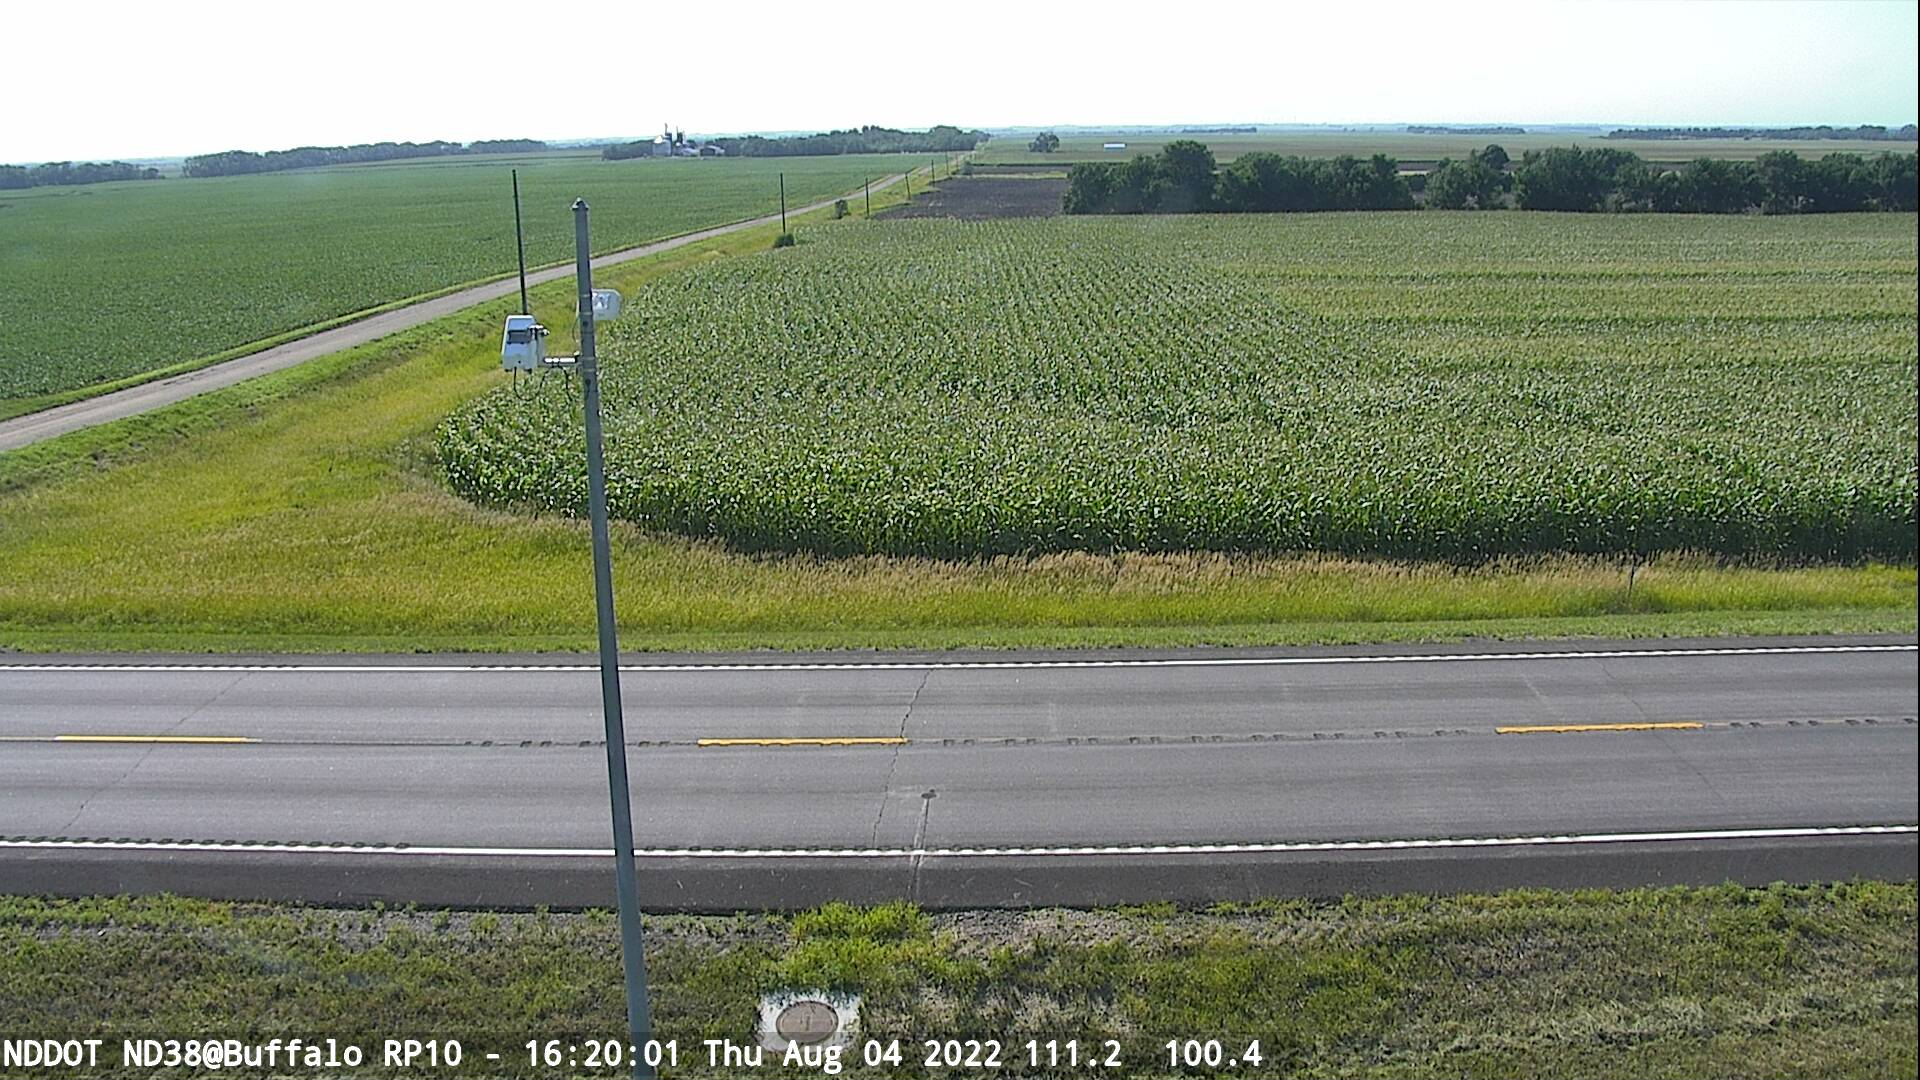 Buffalo - West (ND 38 MP 10) - NDDOT